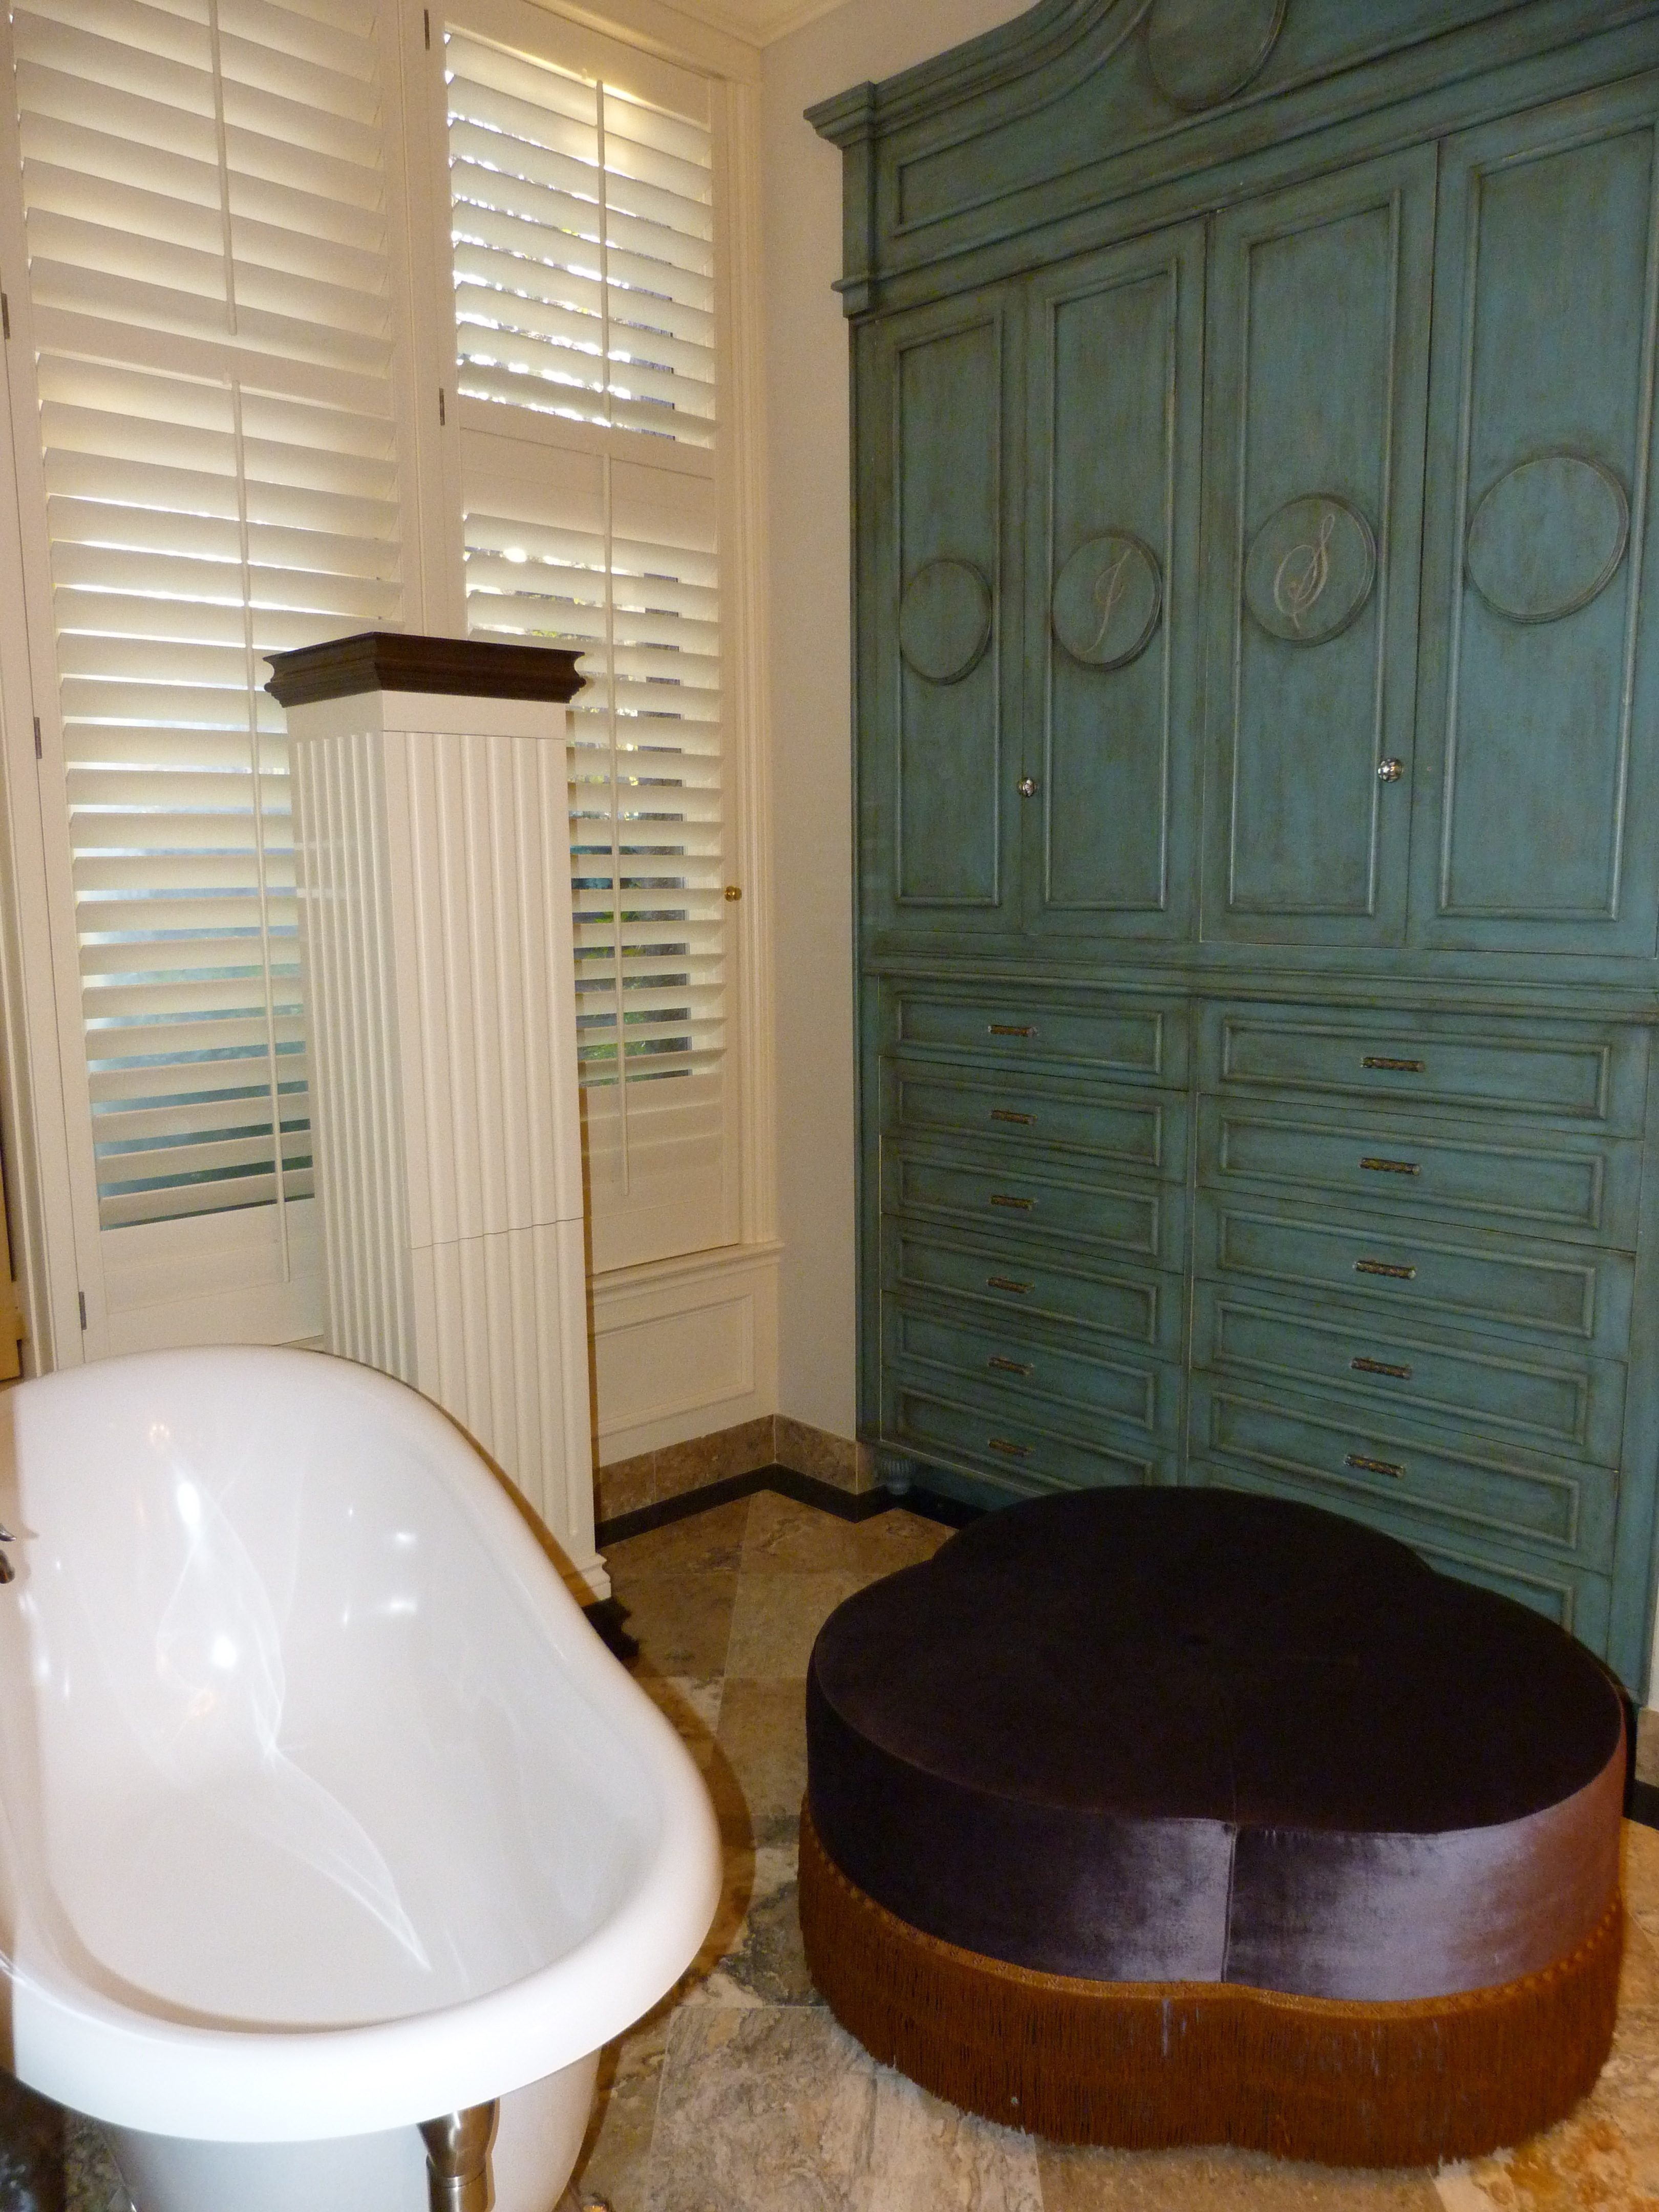 bathroom remodeling oklahoma city kitchen remodel okc Gorgeous green bathroom cabinets by Majestic Construction